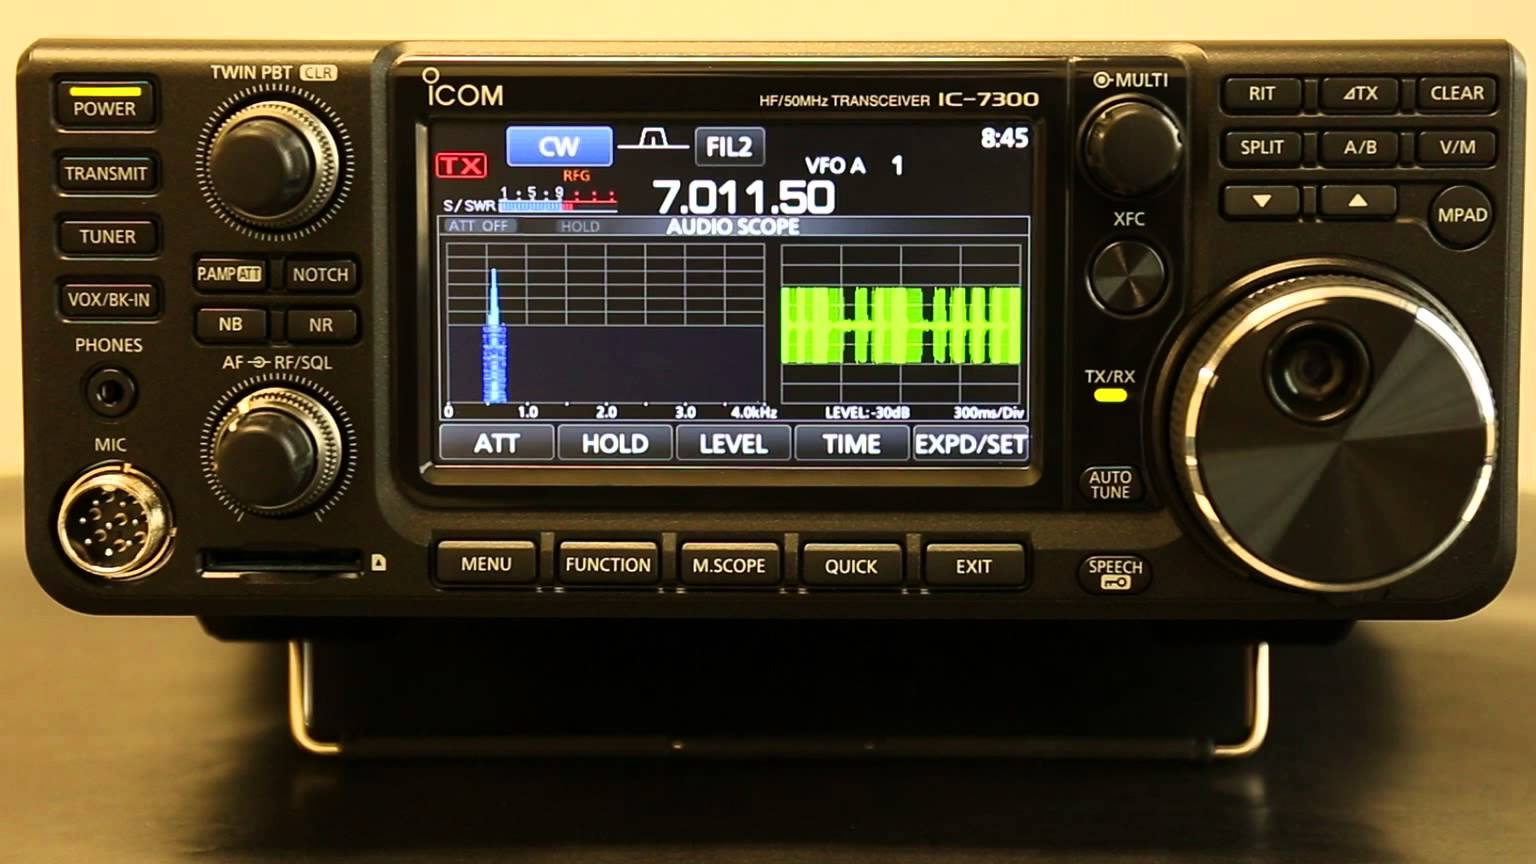 Icom IC-7300 Transceiver Drivers for Windows Mac